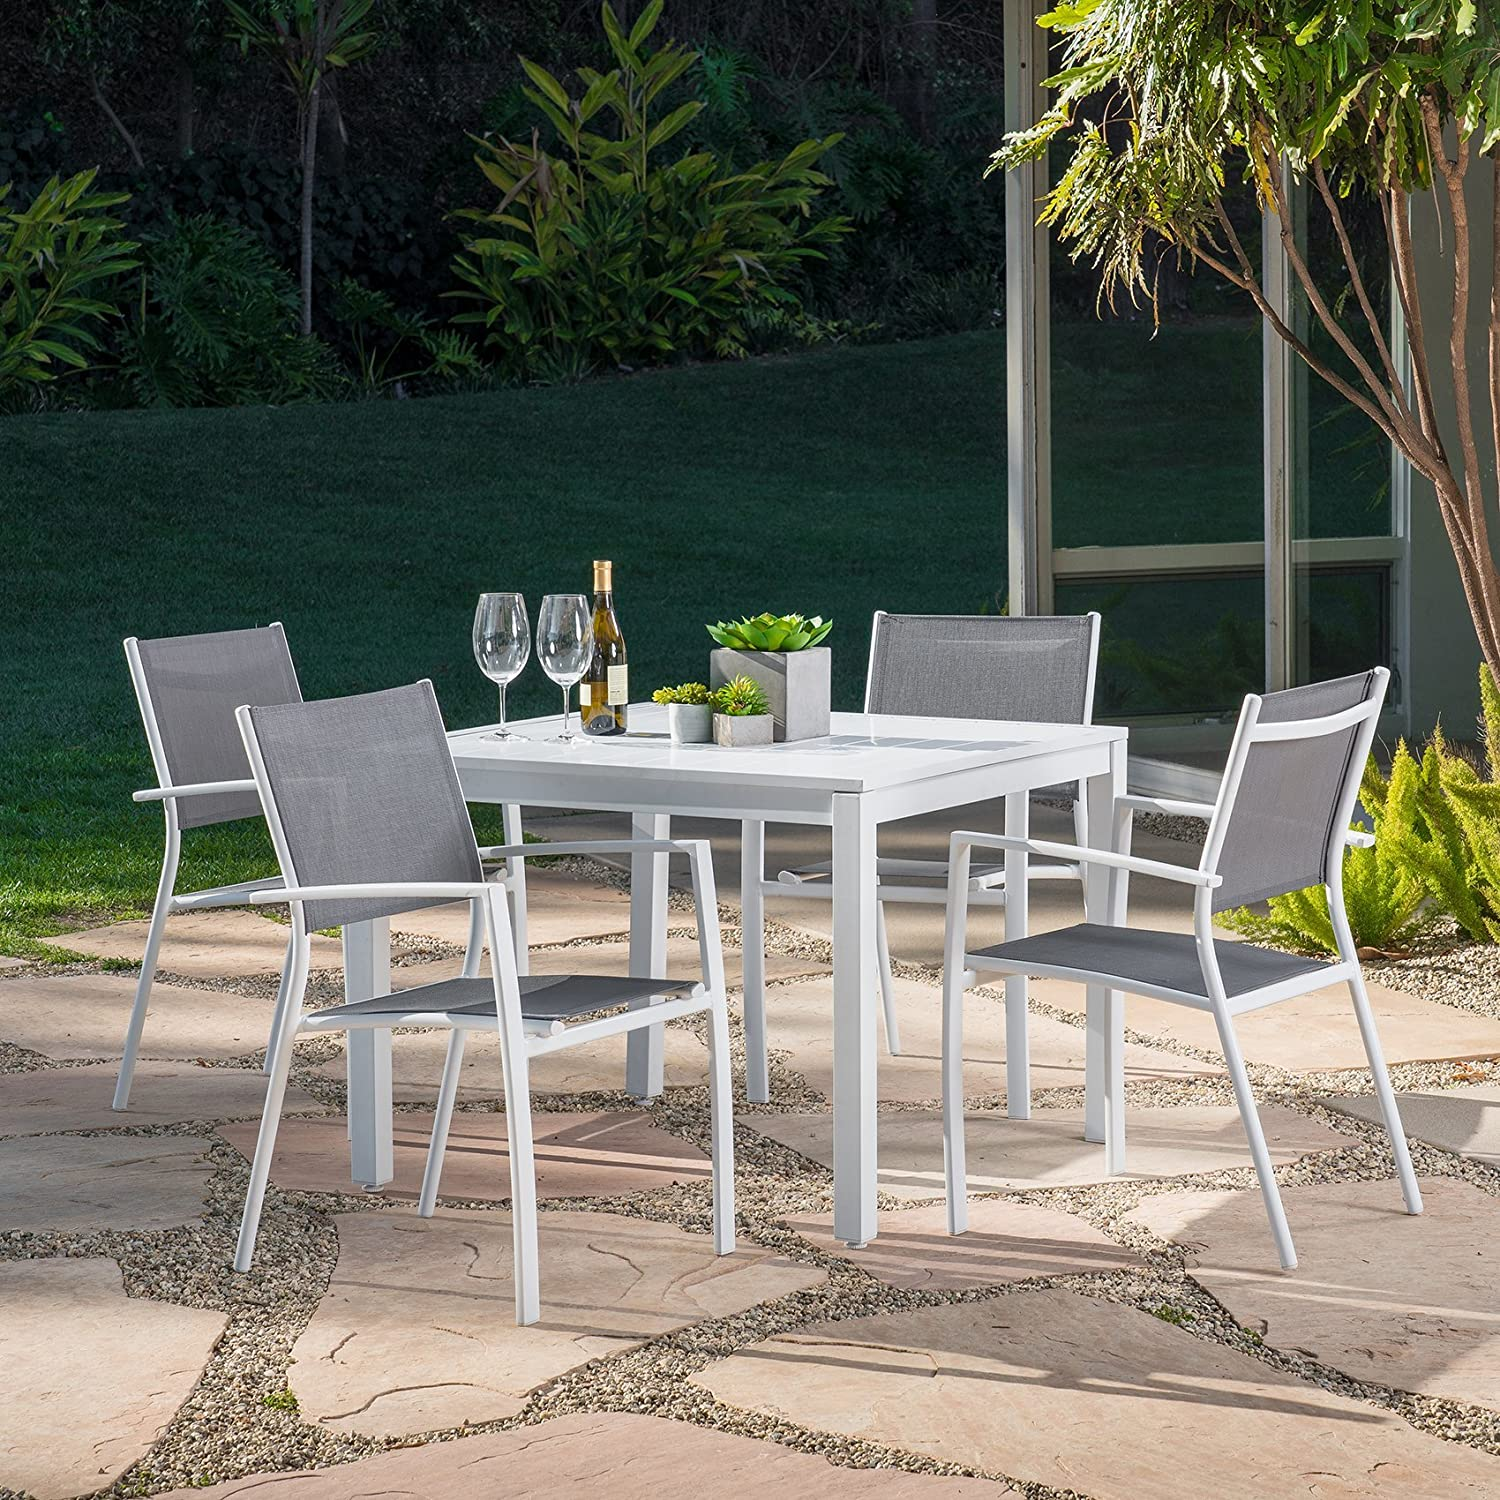 "Mōd Furniture HARPDNS5PCSQ-WHT Harper 5Piece Set with 4 Sling Arm Chairs & A 38"" Square Dining Table Outdoor Furniture, White"